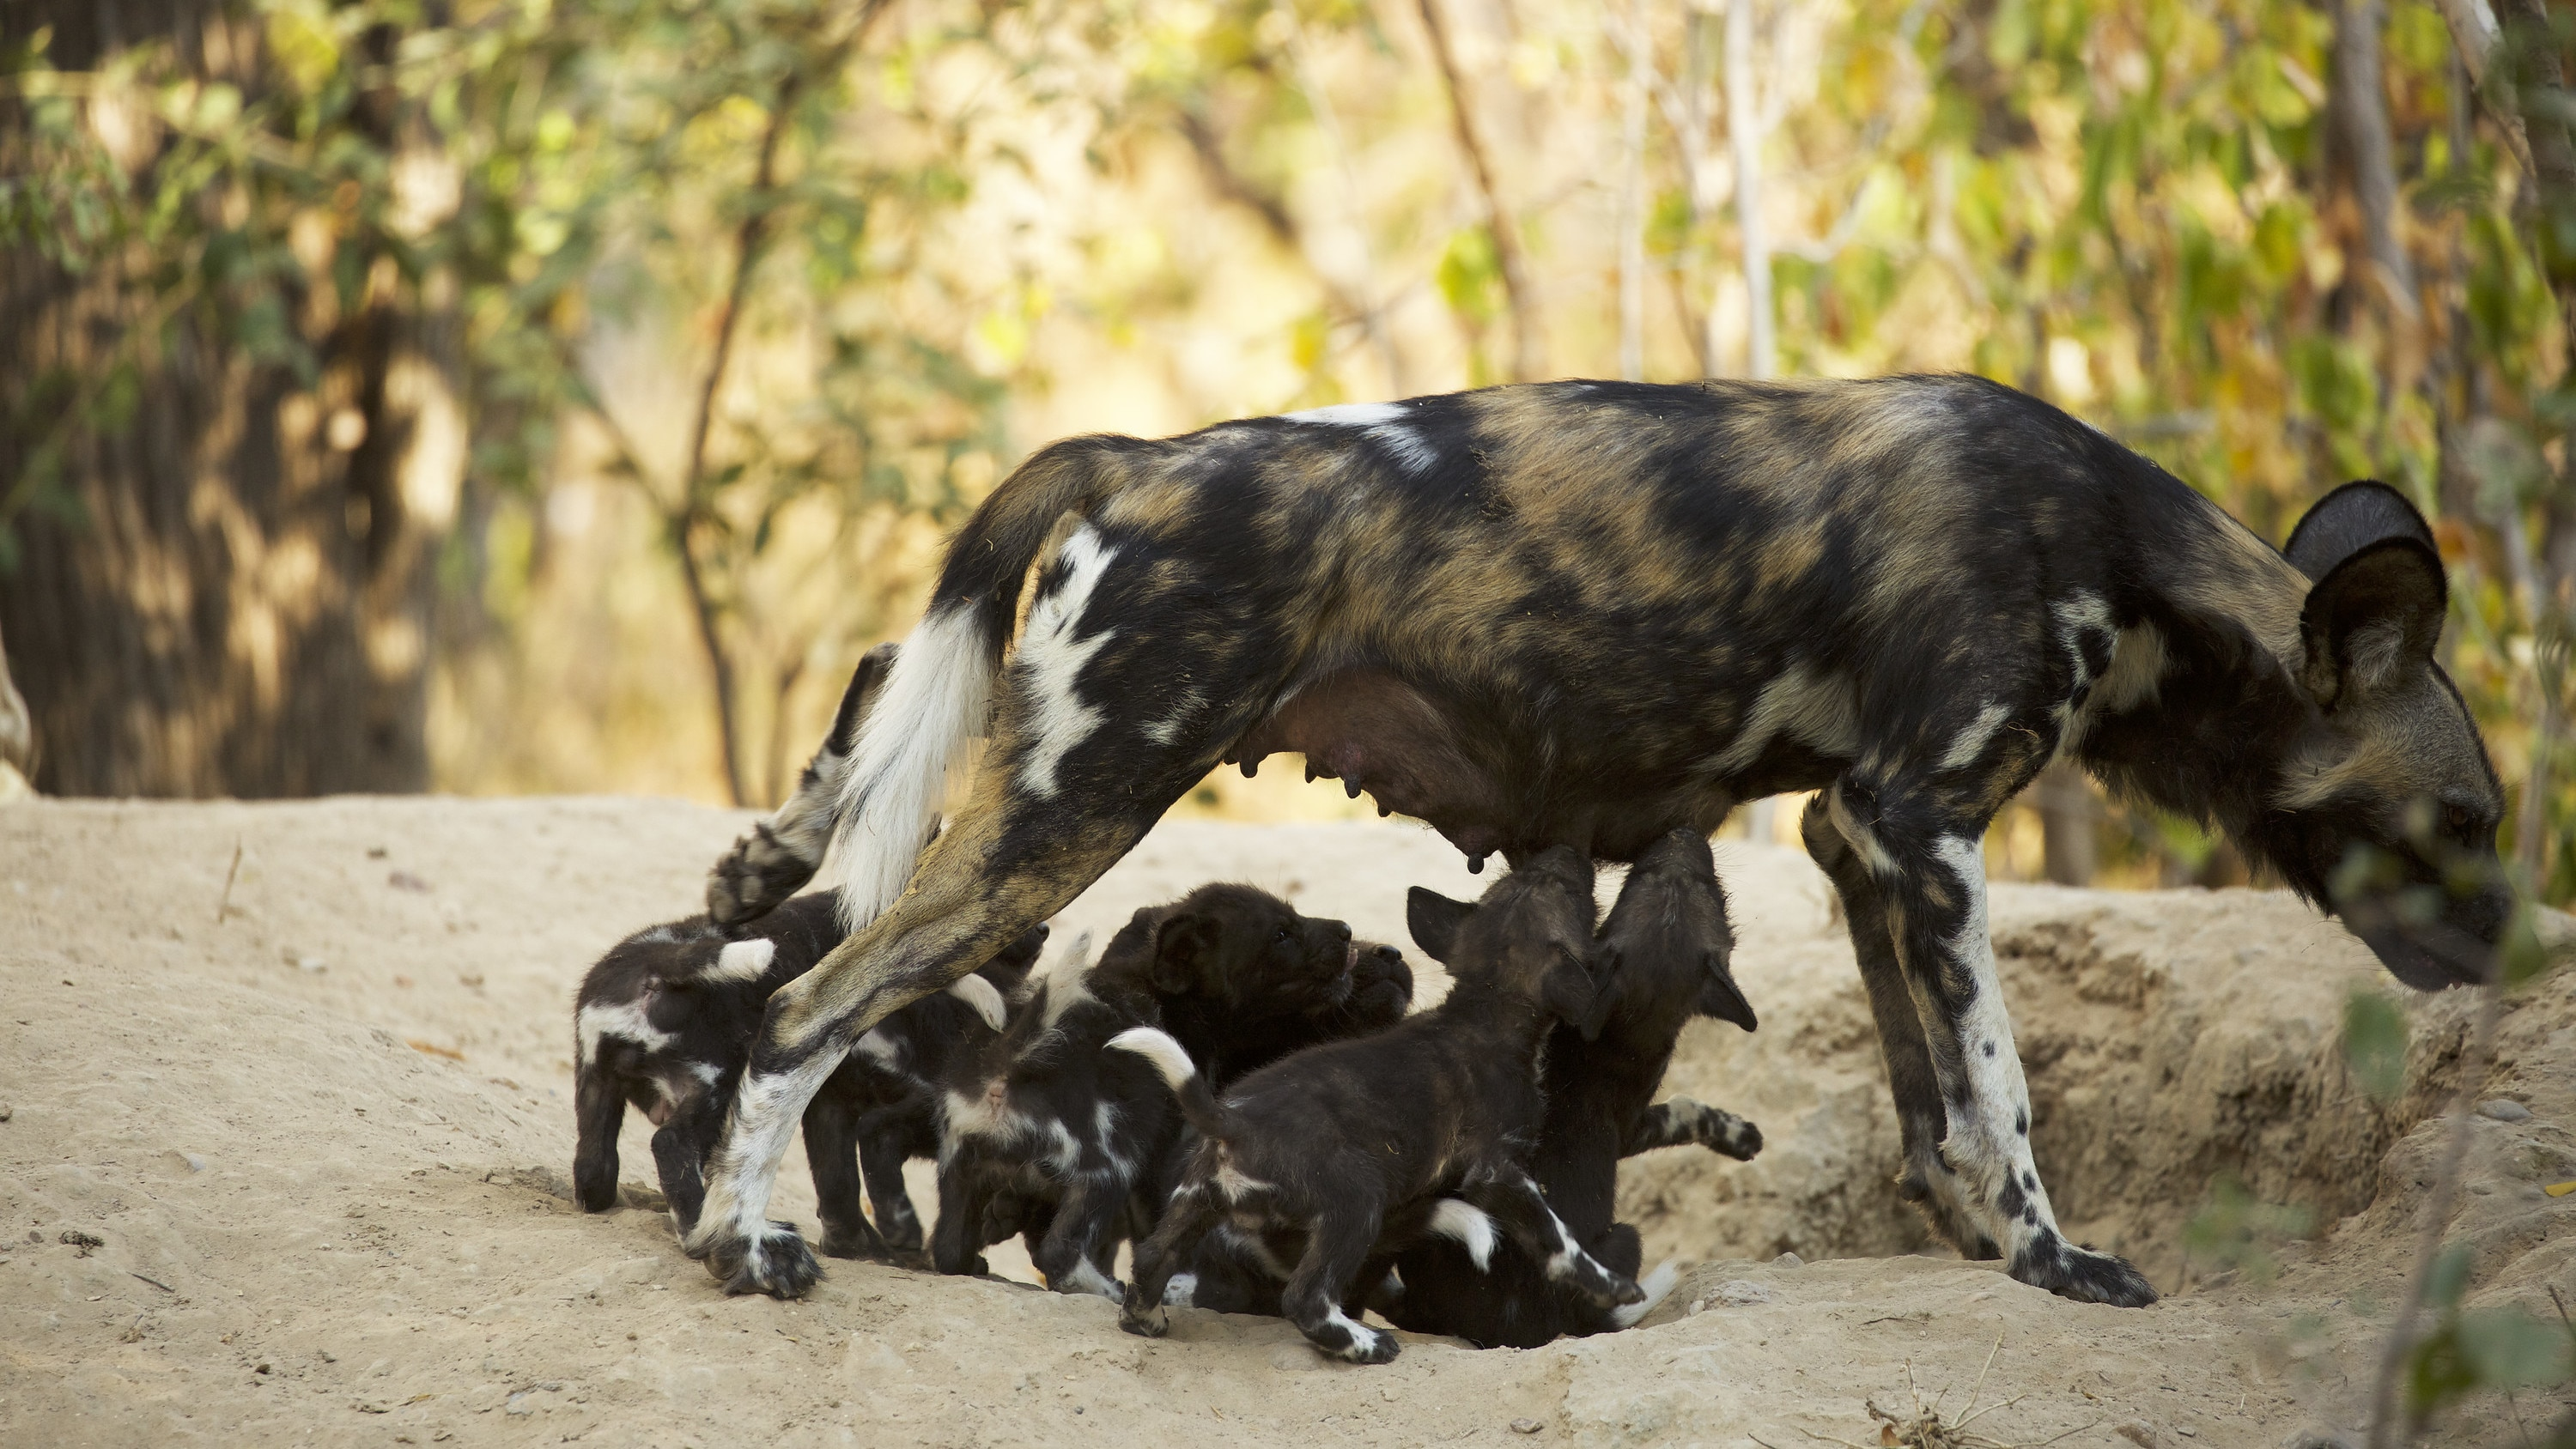 Coco stands with puppies reaching to feed. (National Geographic for Disney+/Kim Wolhuter)